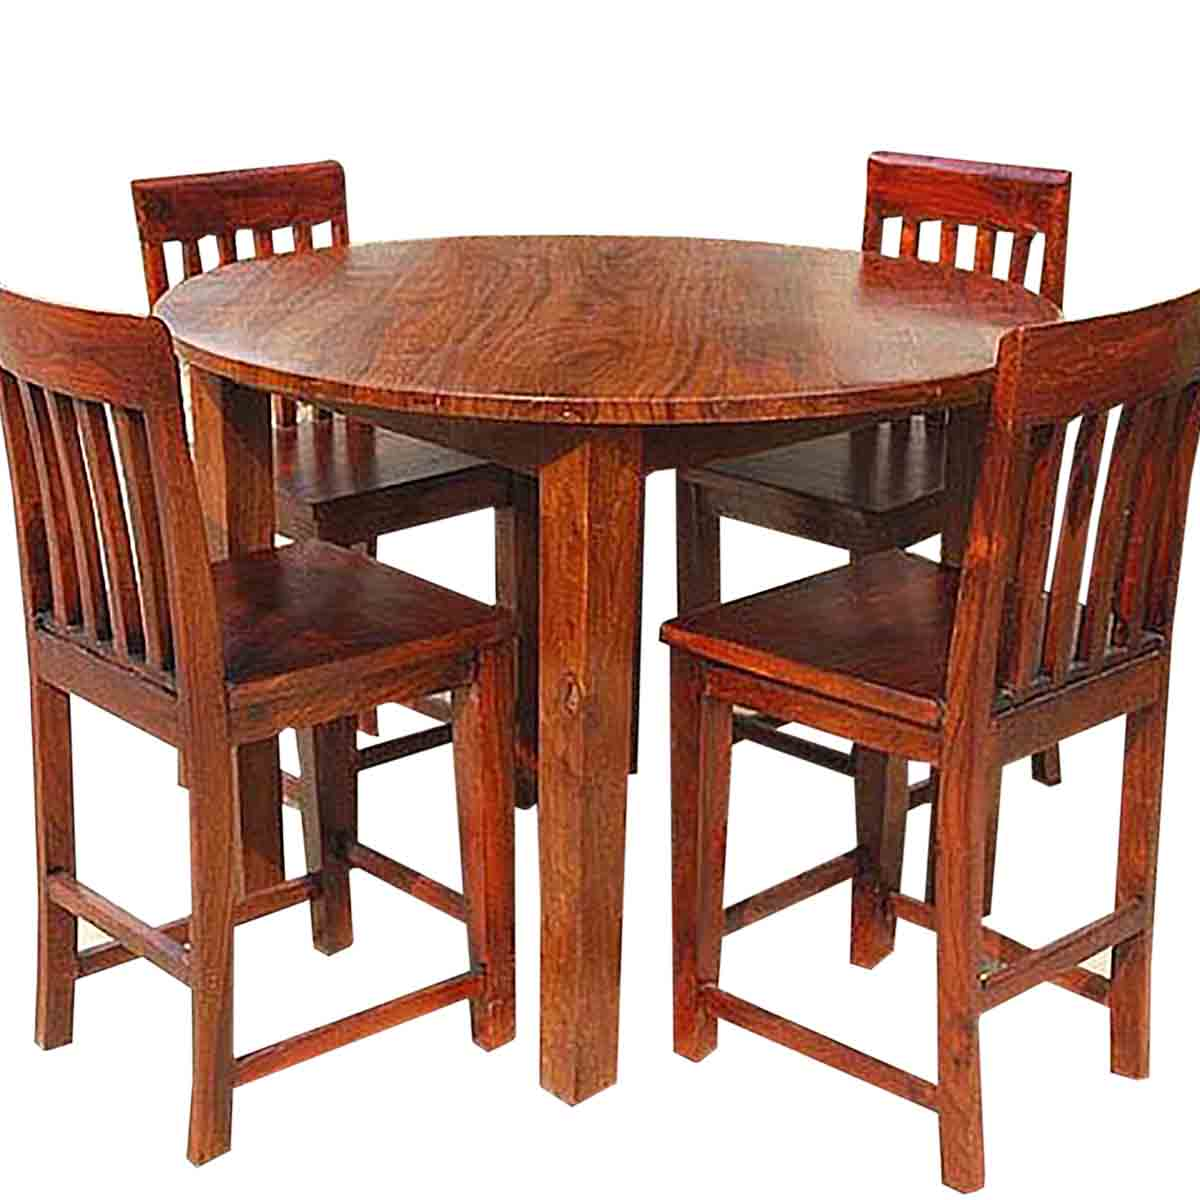 Sierra nevada 5 pc pub table bar dining room table and chair set - Pub dining room set ...